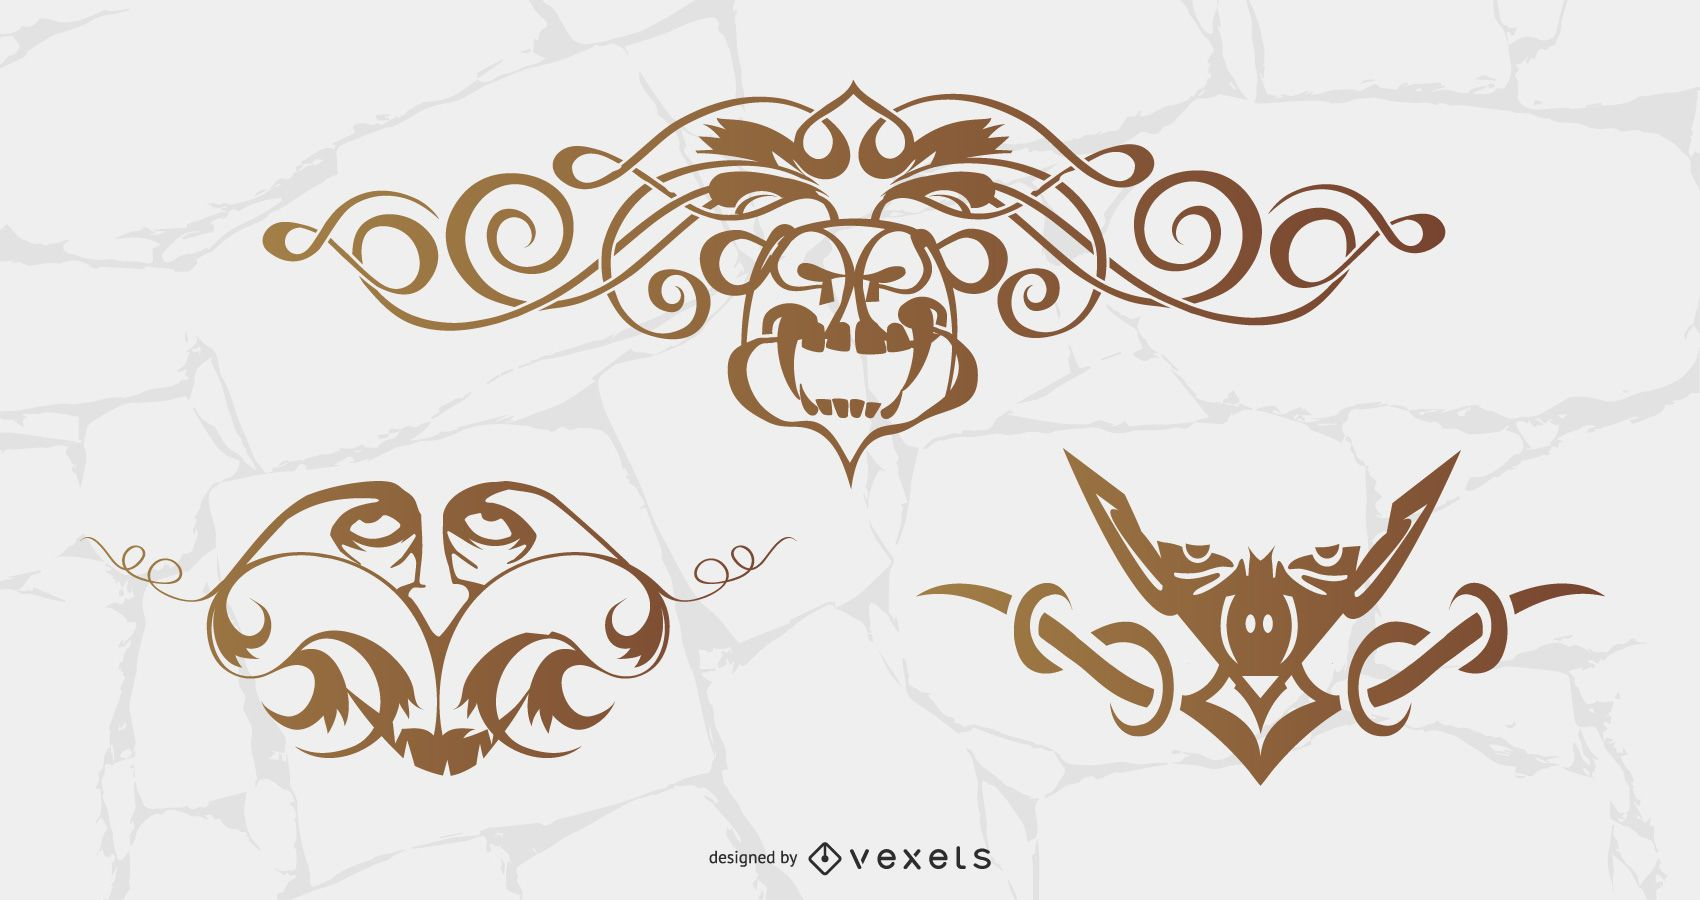 Free vector ornaments with faces